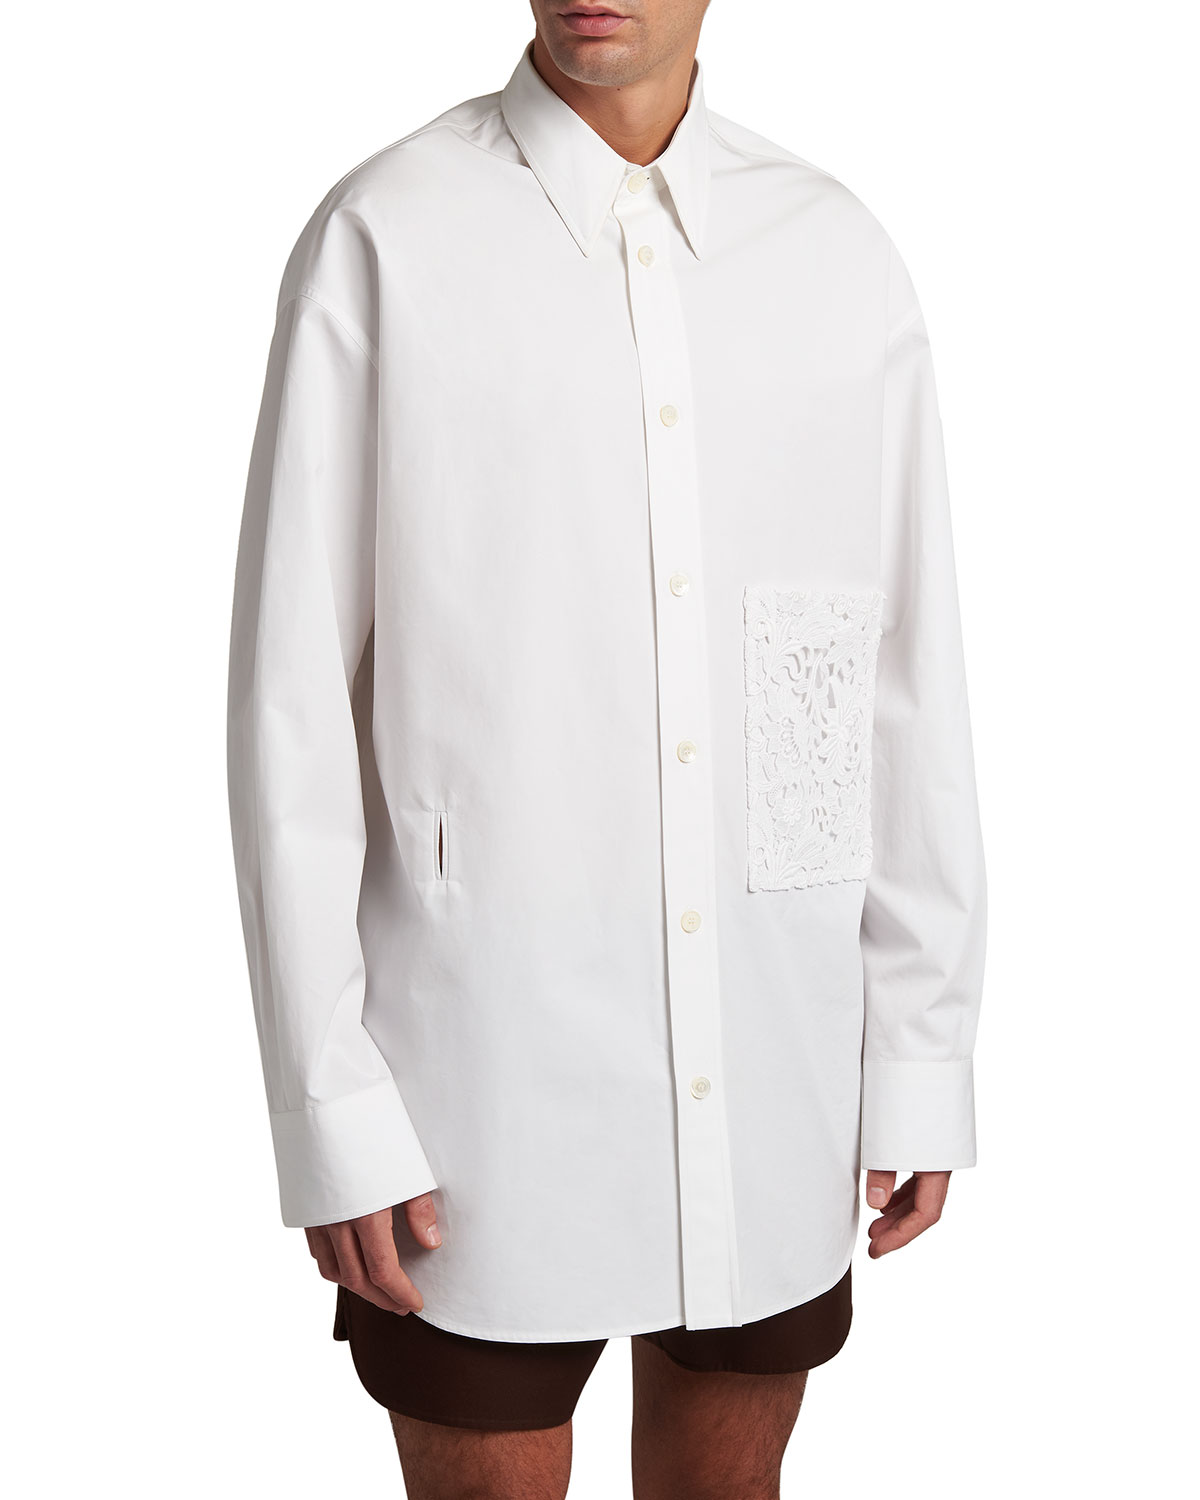 Valentino MEN'S OVERSIZED SPORT SHIRT W/ MACRAME POCKET